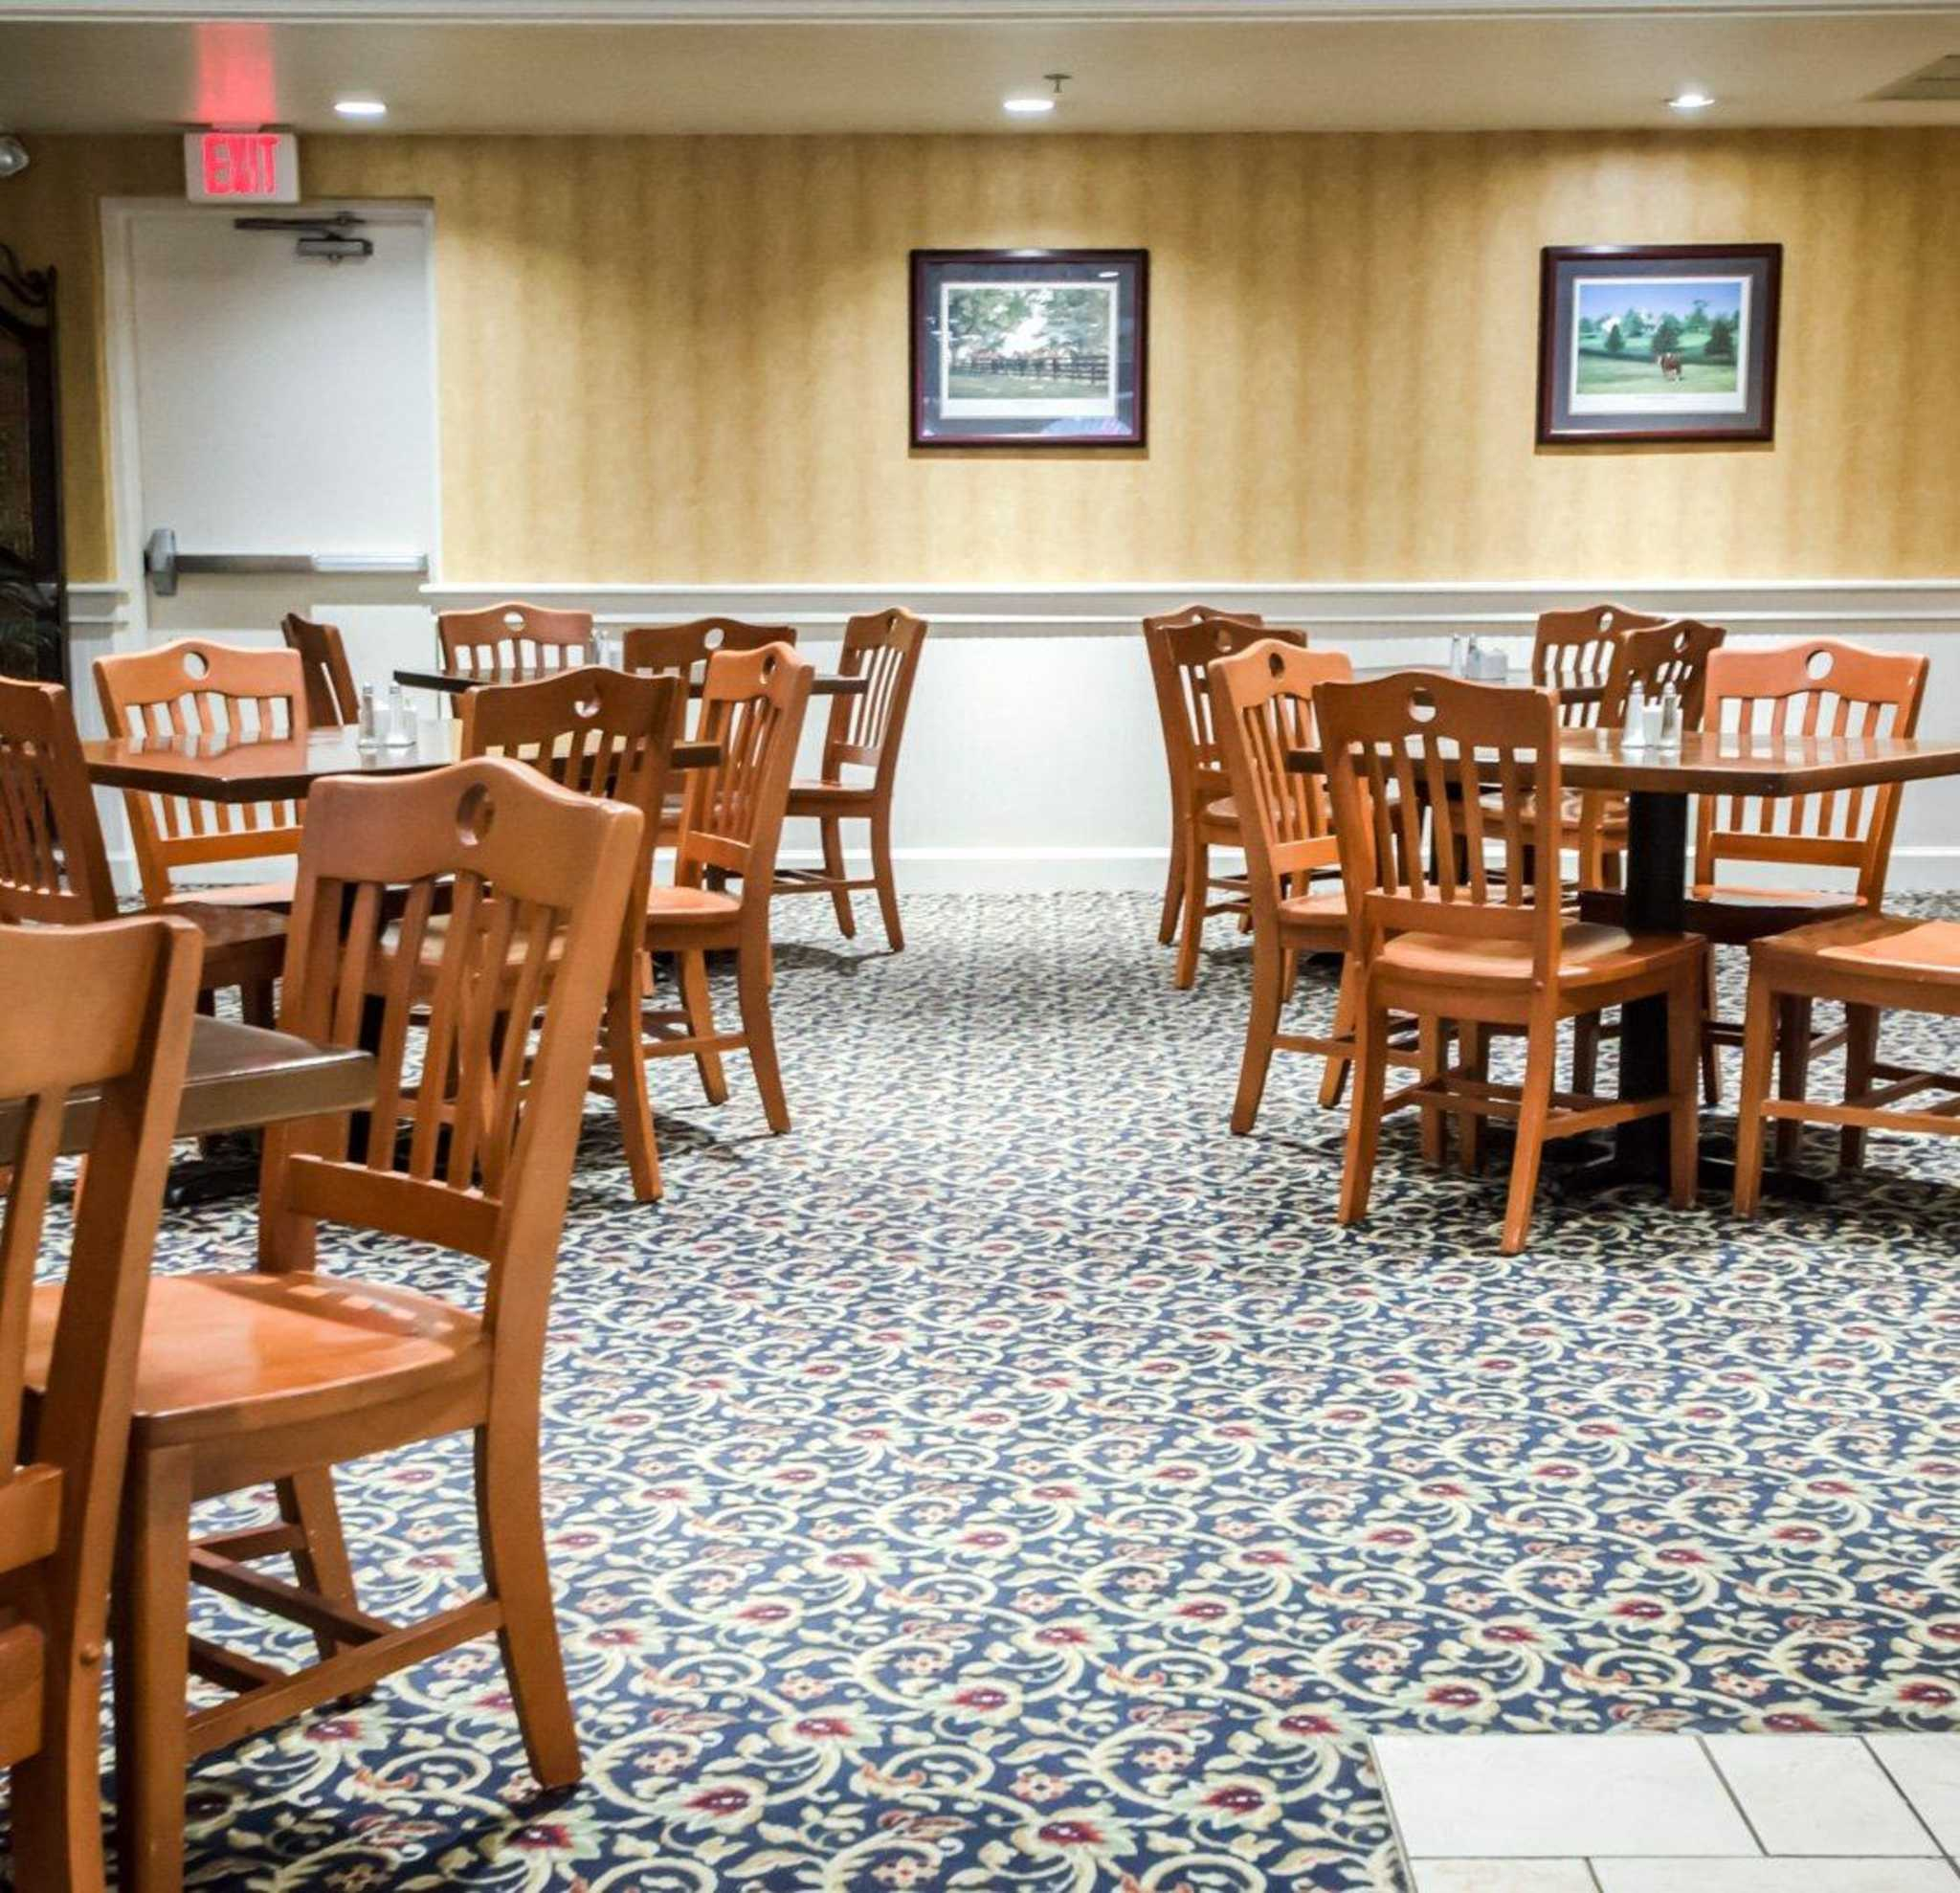 Meeting Rooms For Rent In Lexington Ky